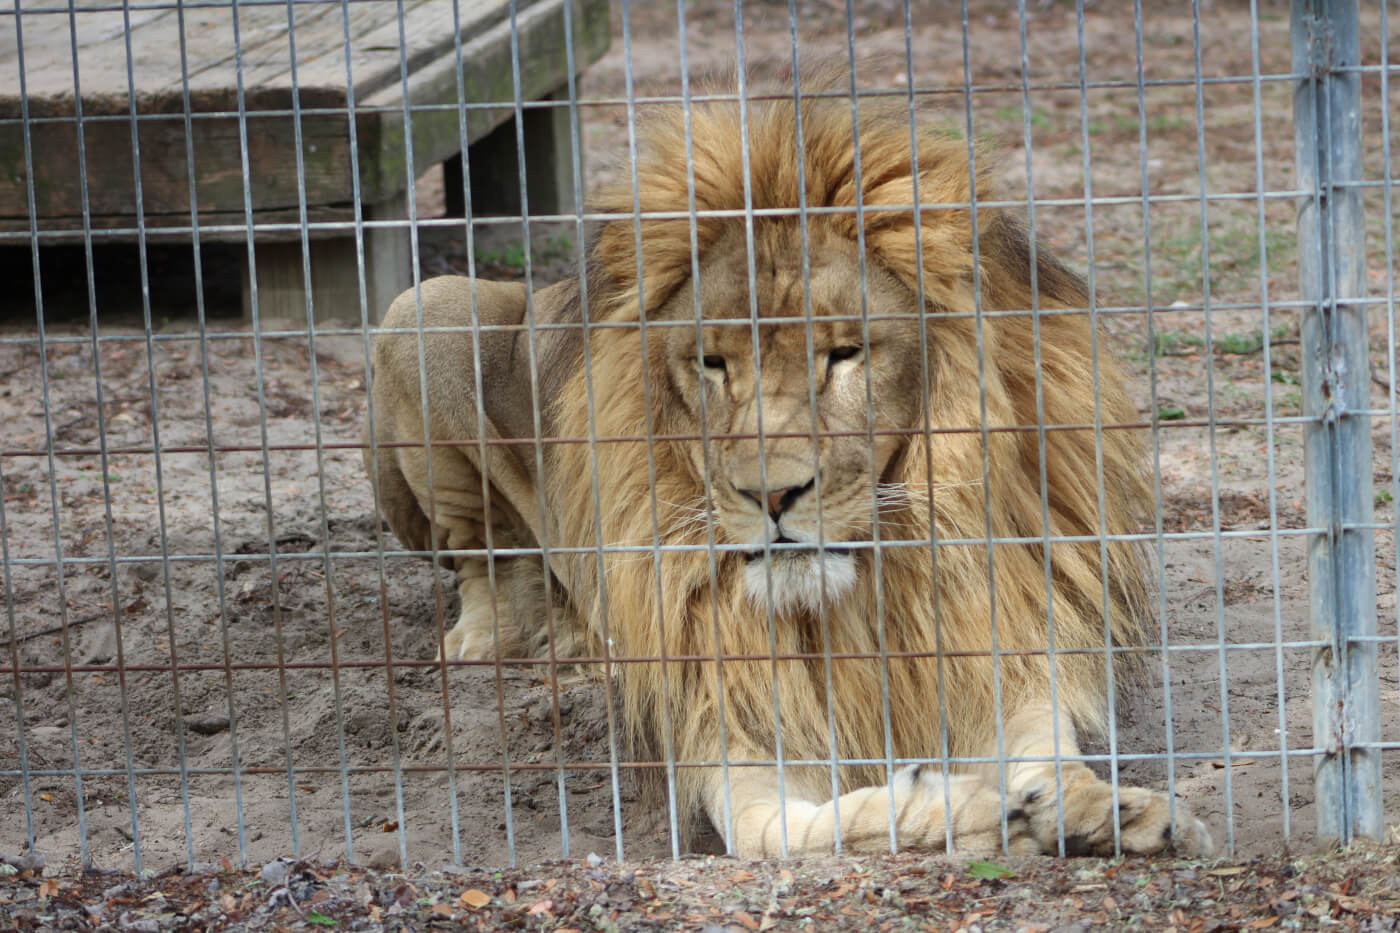 disadvantages of keeping animals in captivity